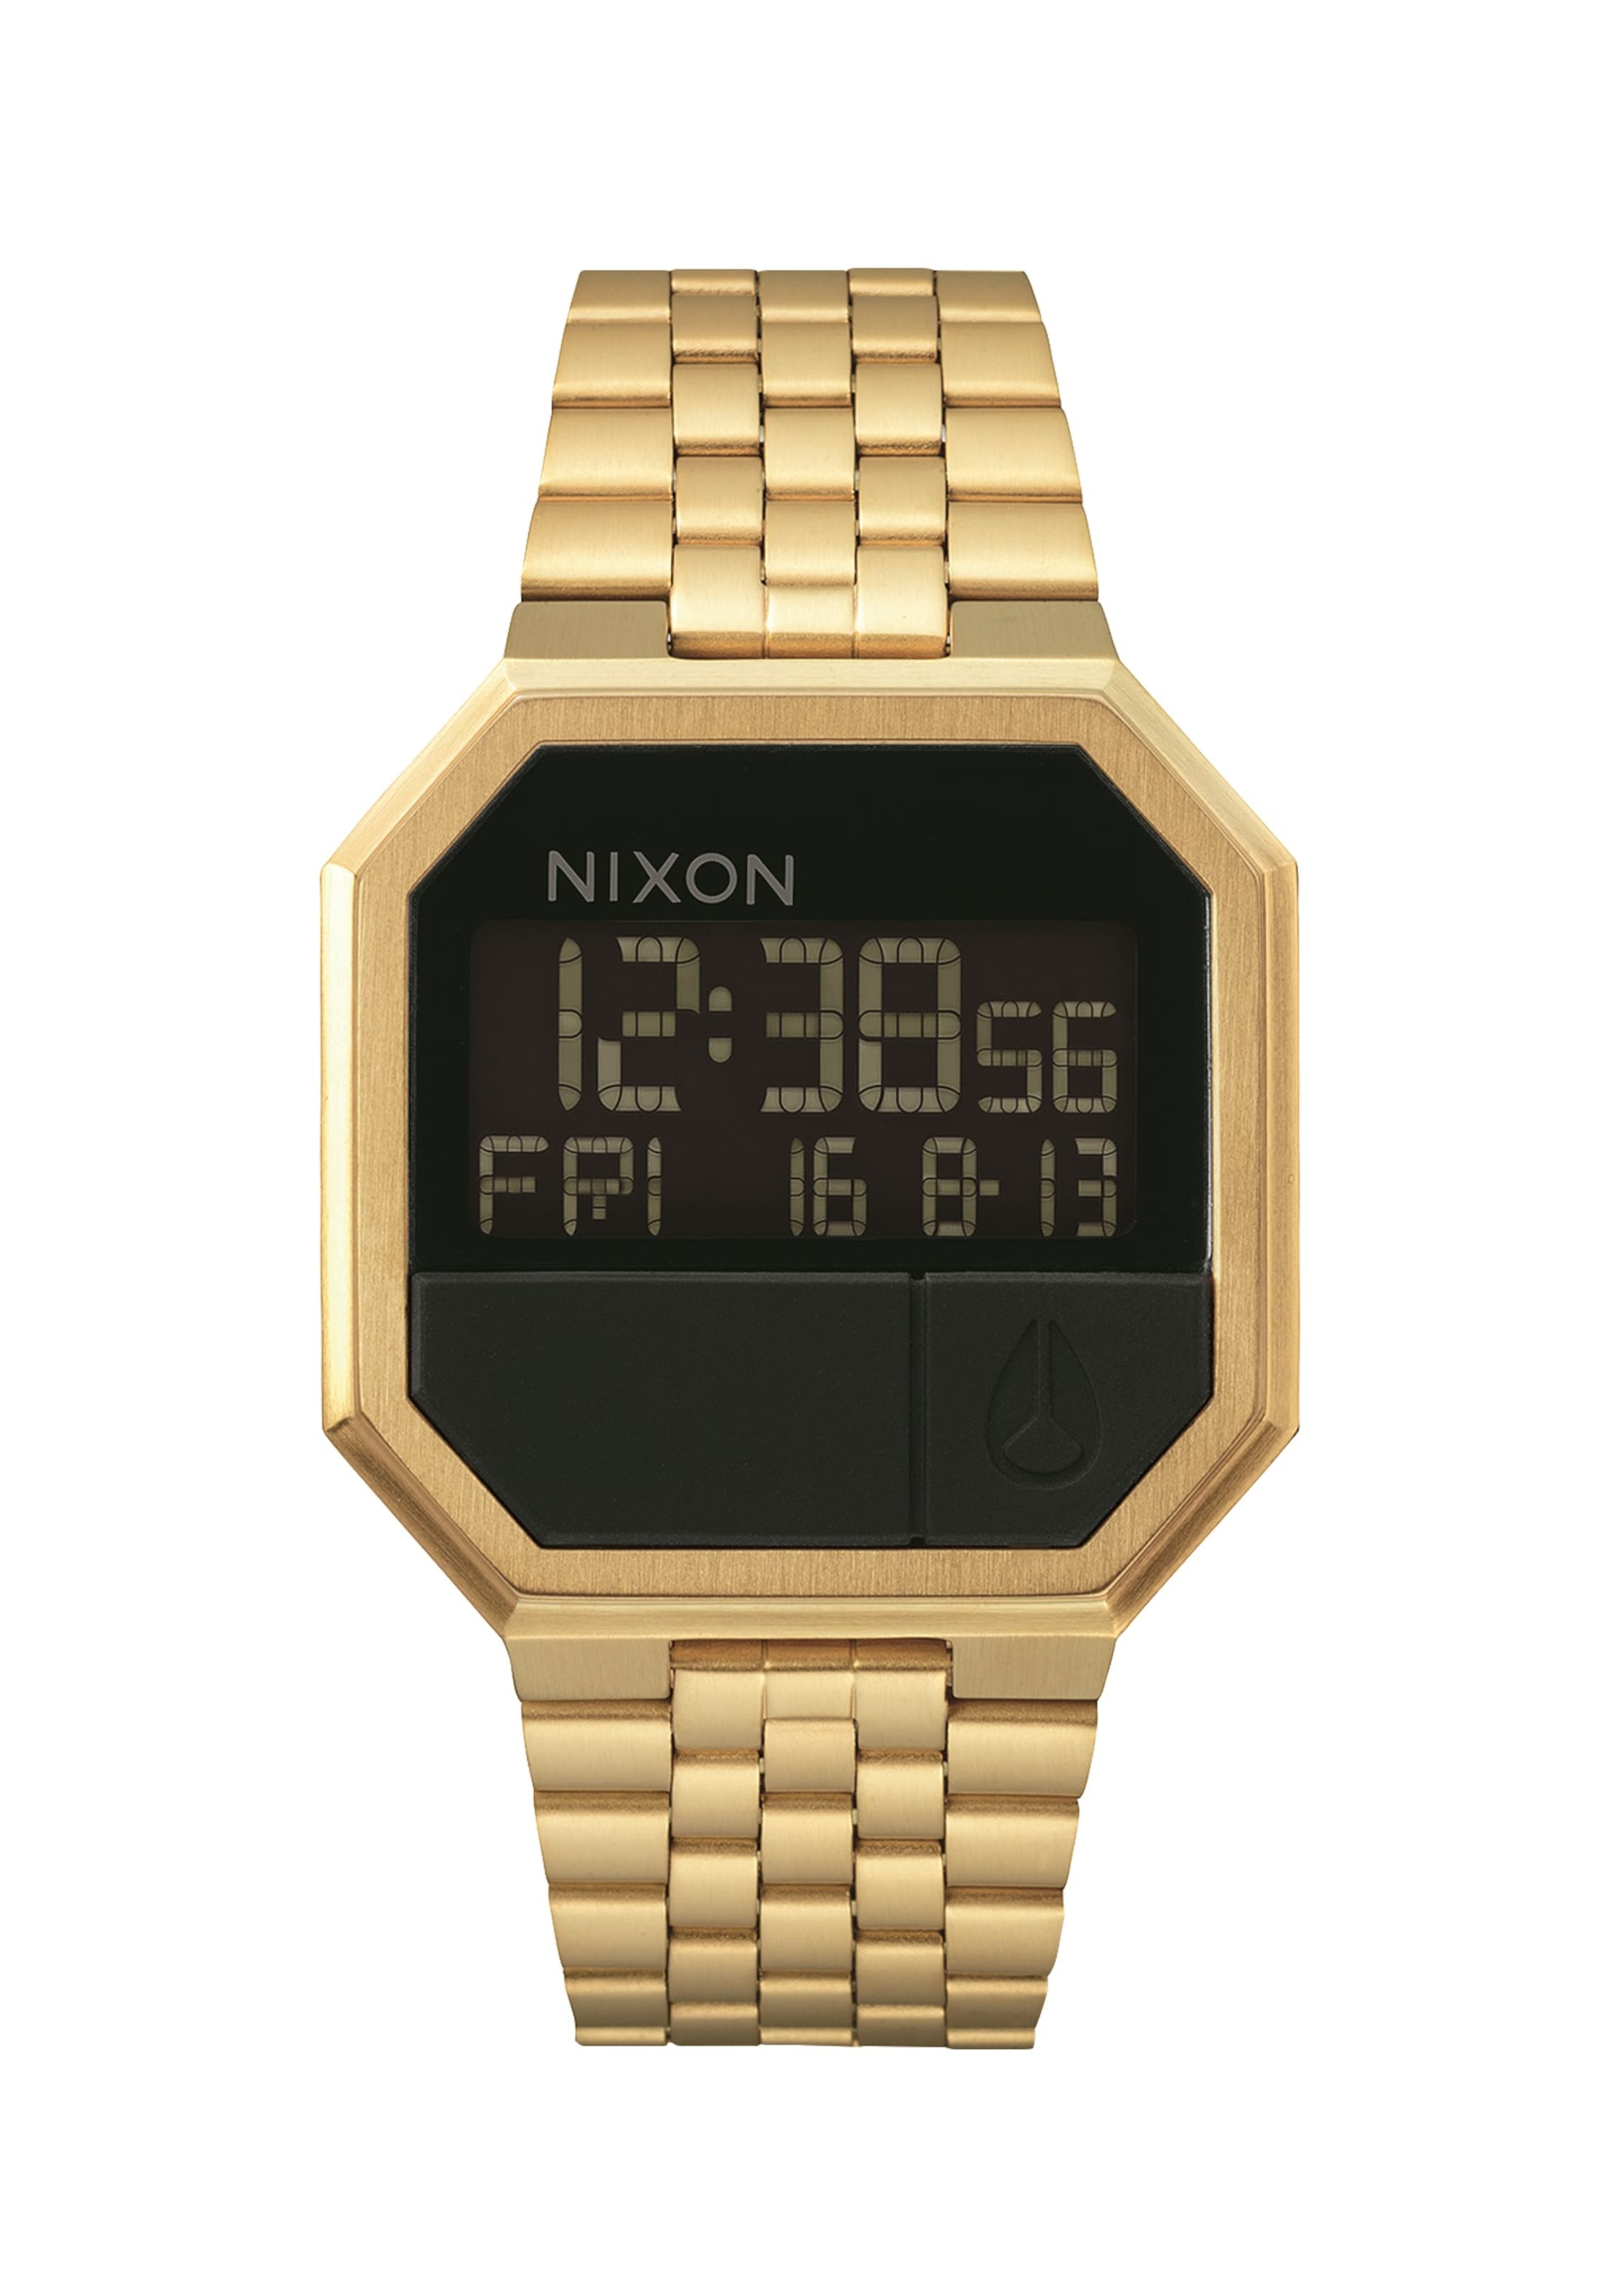 Nixon Horloge Digitaal 're run' GoudZwart In lKTF1J3uc